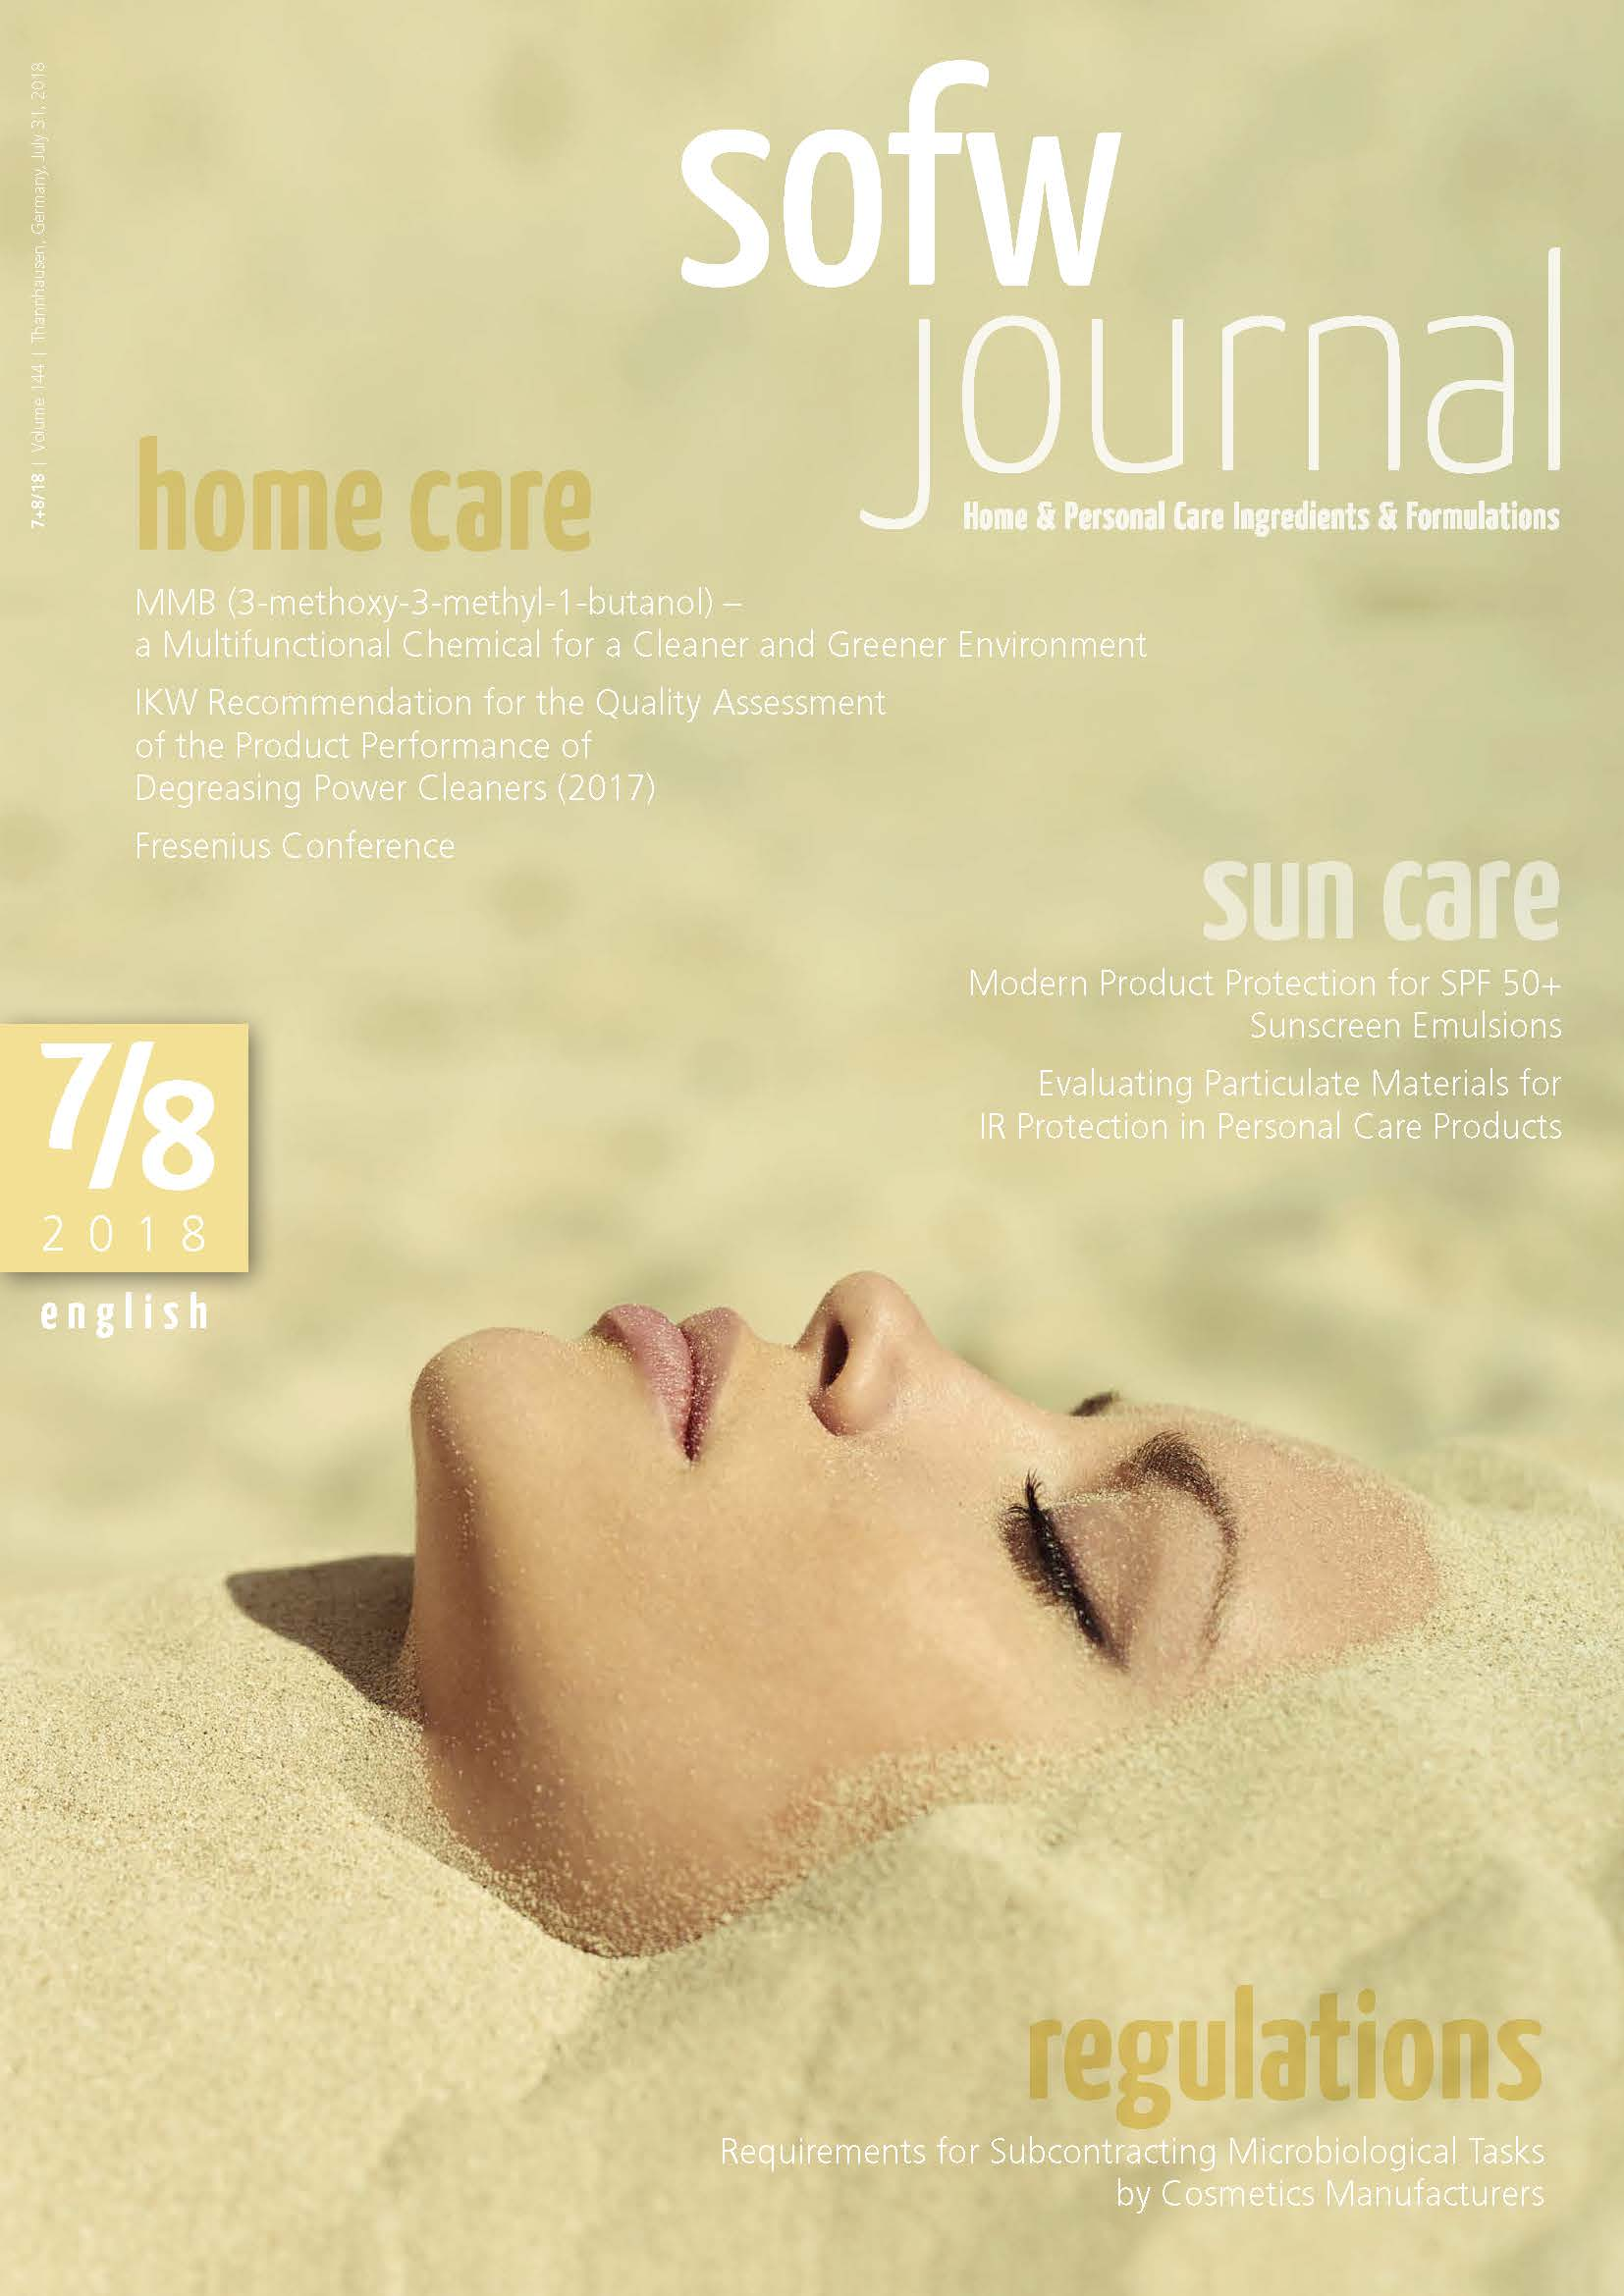 sofwjournal_en_2018_07_cover_1521097594